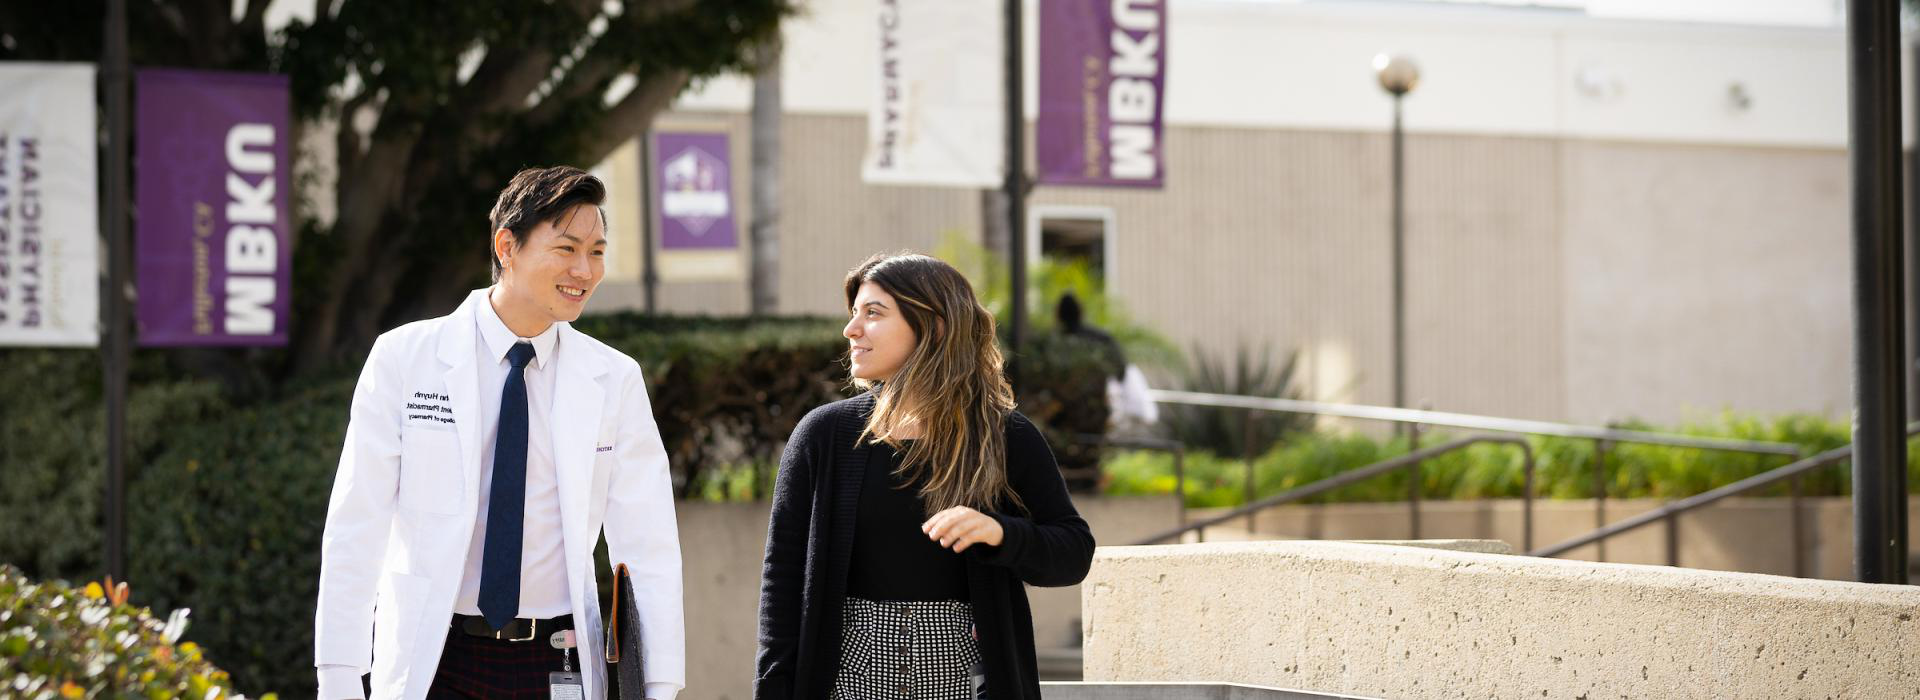 Male student wearing a white coat chats with female student at the Fullerton campus